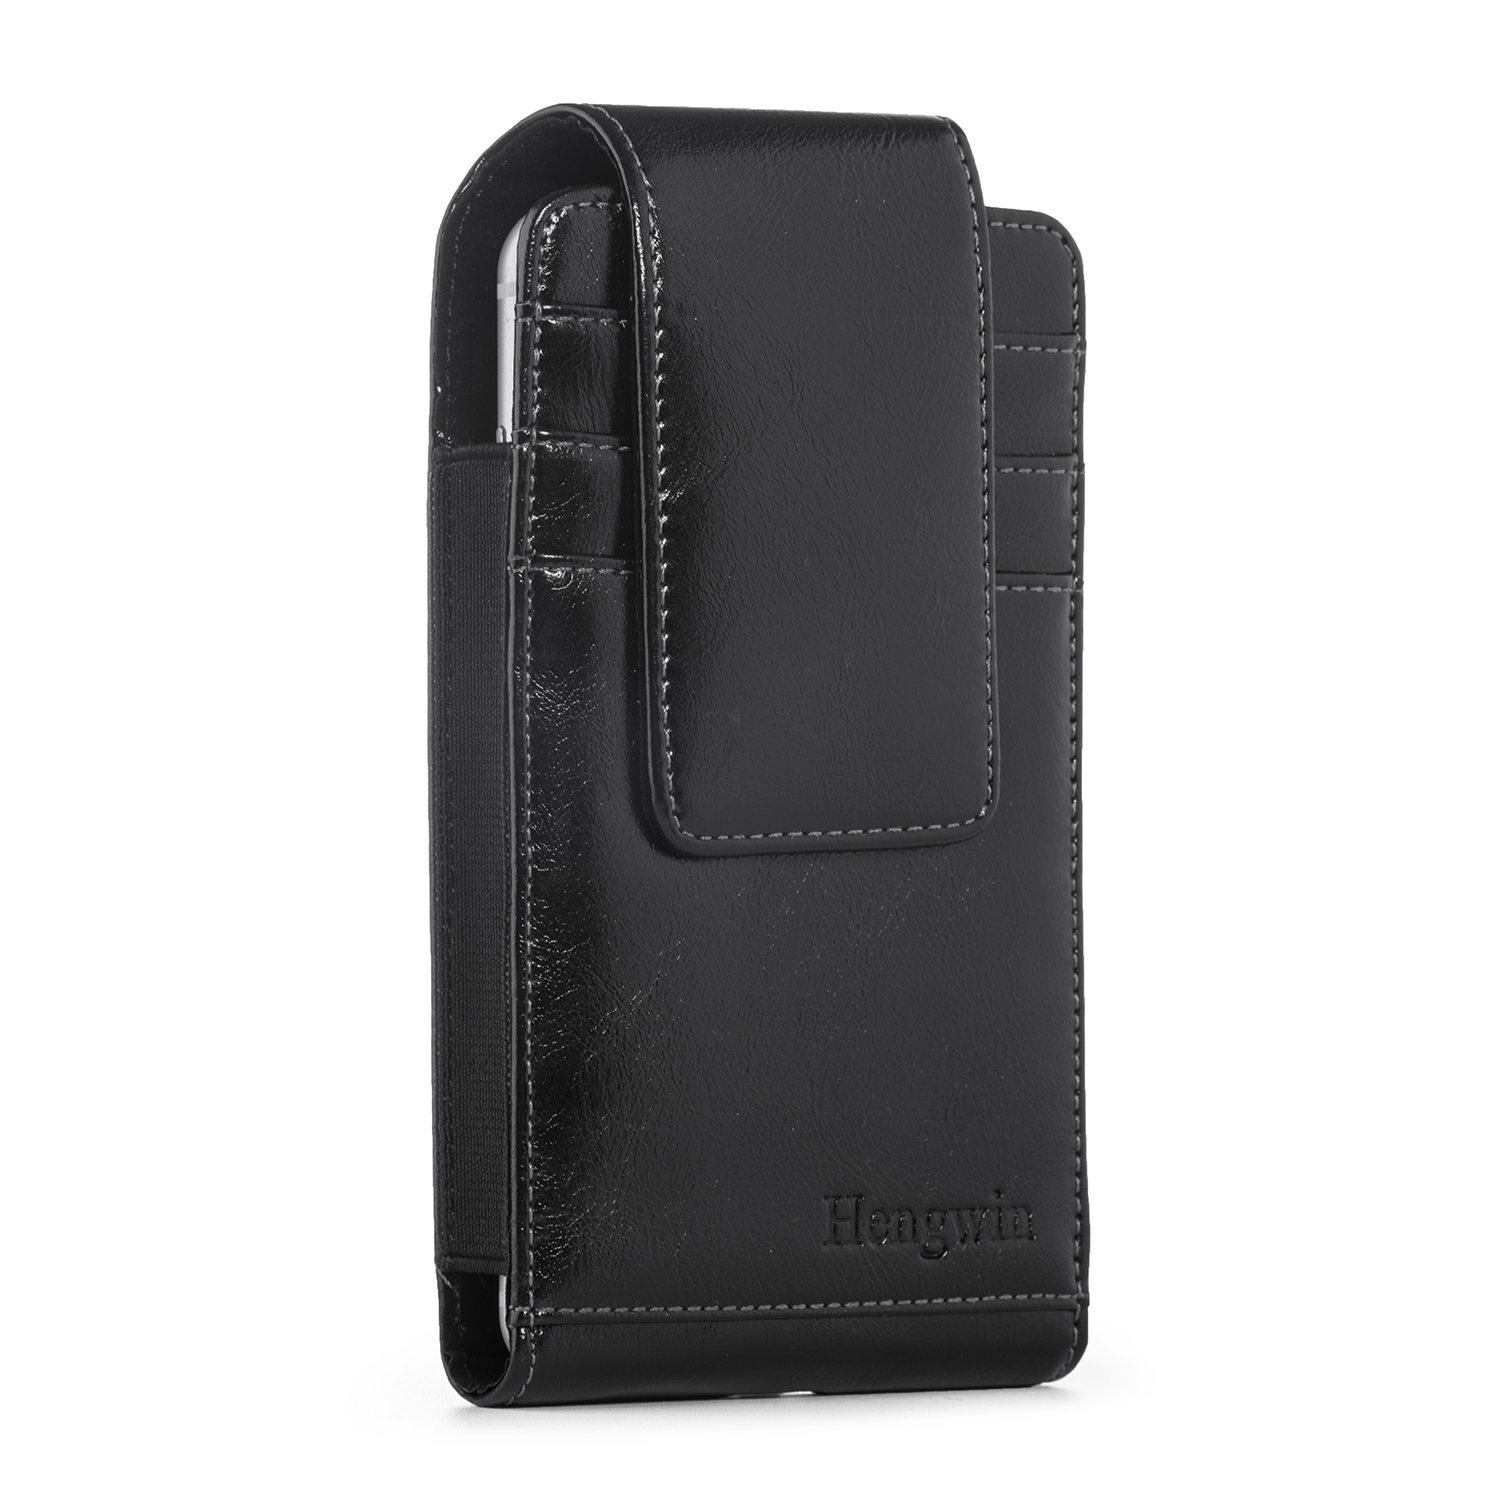 iPhone 7 Plus Holster Case, Vertical Smooth Oil Wax Leather Carrying Case Belt Case for iPhone 6S Plus Smart phone Holster Sleeve Belt Loop Holster Pouch Wallet Case with 3 Card Slots-Black Hengwin 4326529478